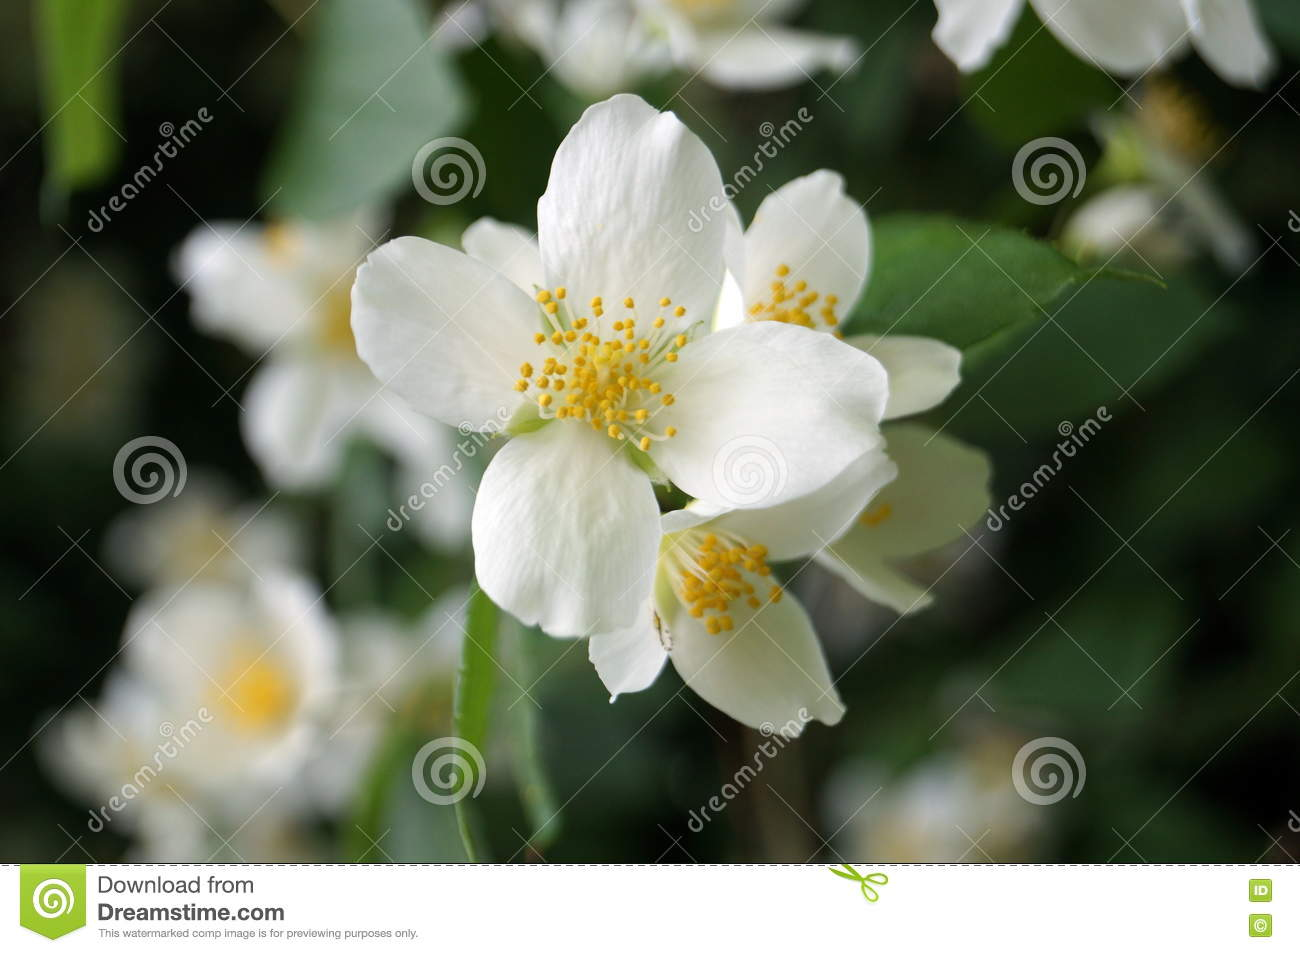 A Branch Of Jasmine On A Bush With White Flowers Stock Photo Image